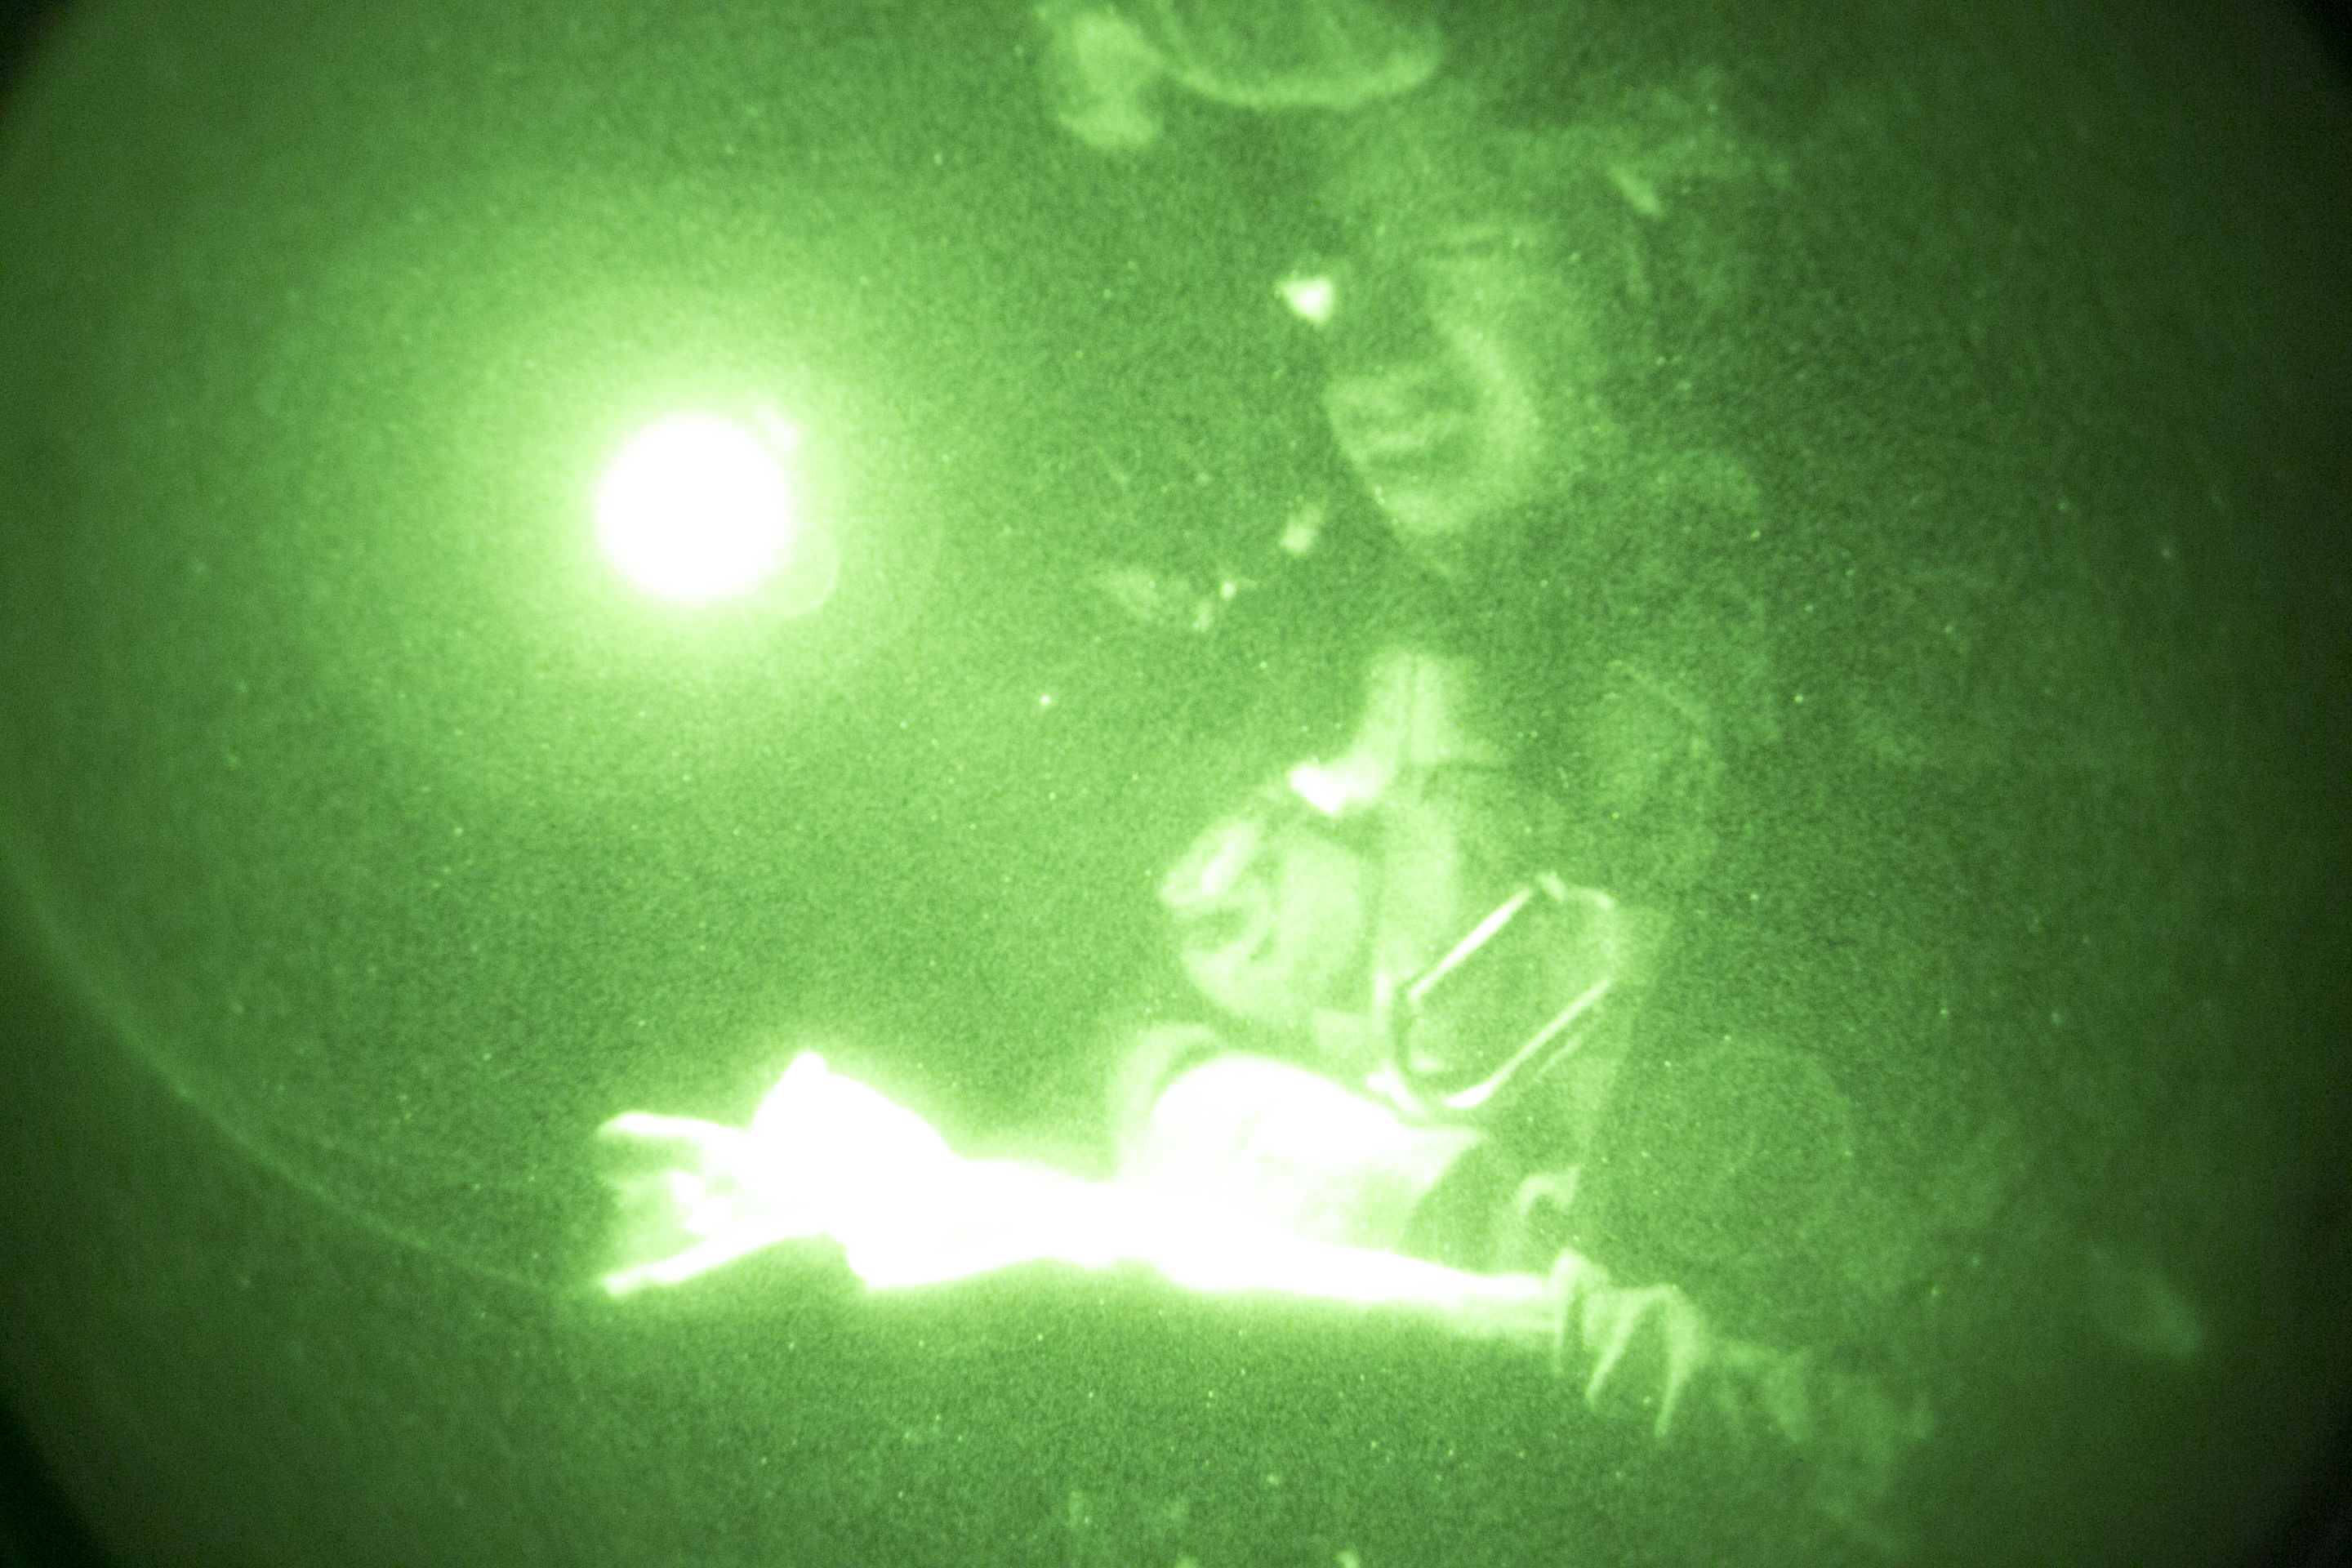 A U.S. Marine with Battalion Landing Team, 1st Battalion, 4th Marines, 11th Marine Expeditionary Unit (MEU), reviews a map while conducting a night raid during Exercise Alligator Dagger near Arta, Djibouti, Dec. 21, 2016. US Marine Corps